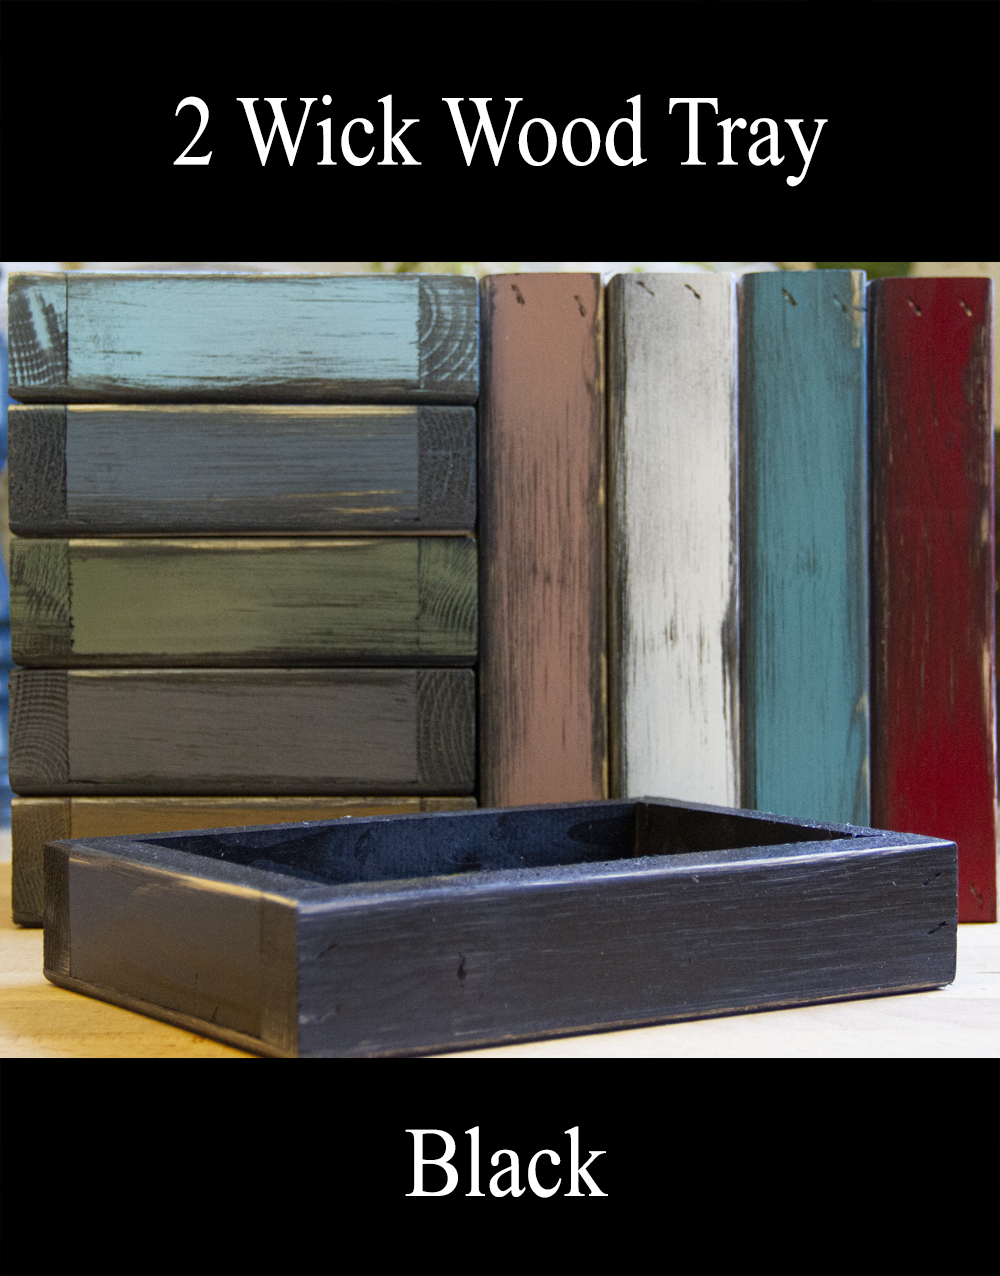 2 Wick Wood Tray – Assorted Colors